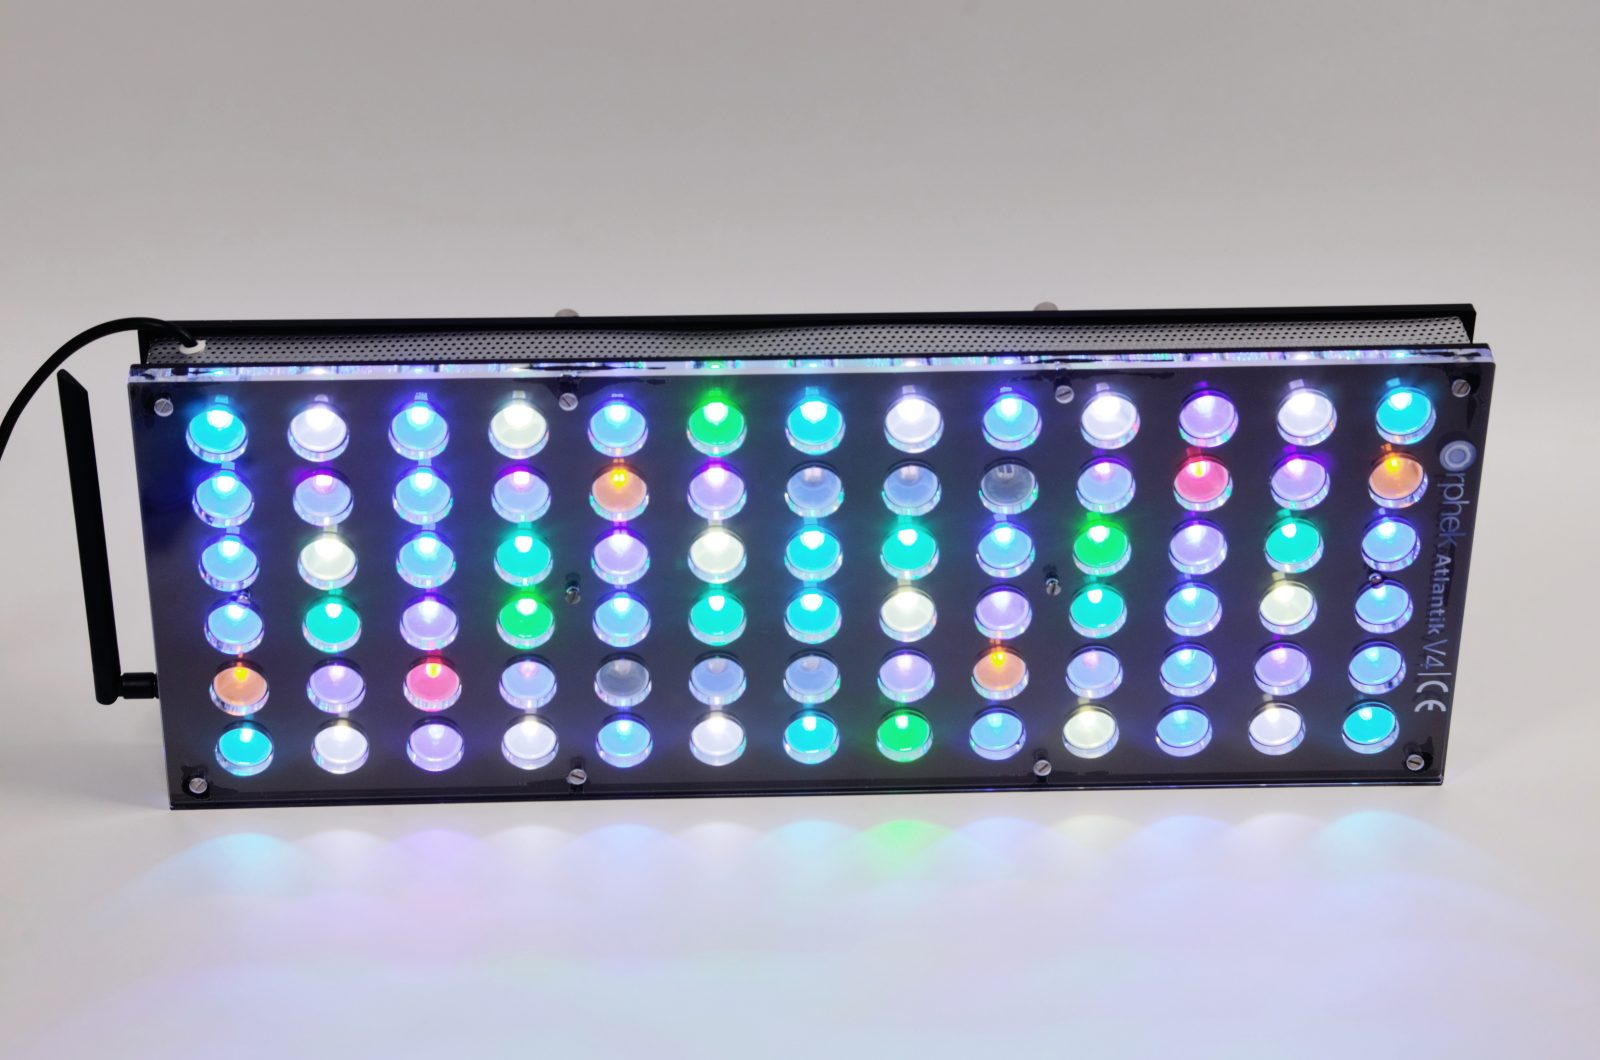 Orphek-Aquarium-LED-освещение-Риф-Atlantik-V4